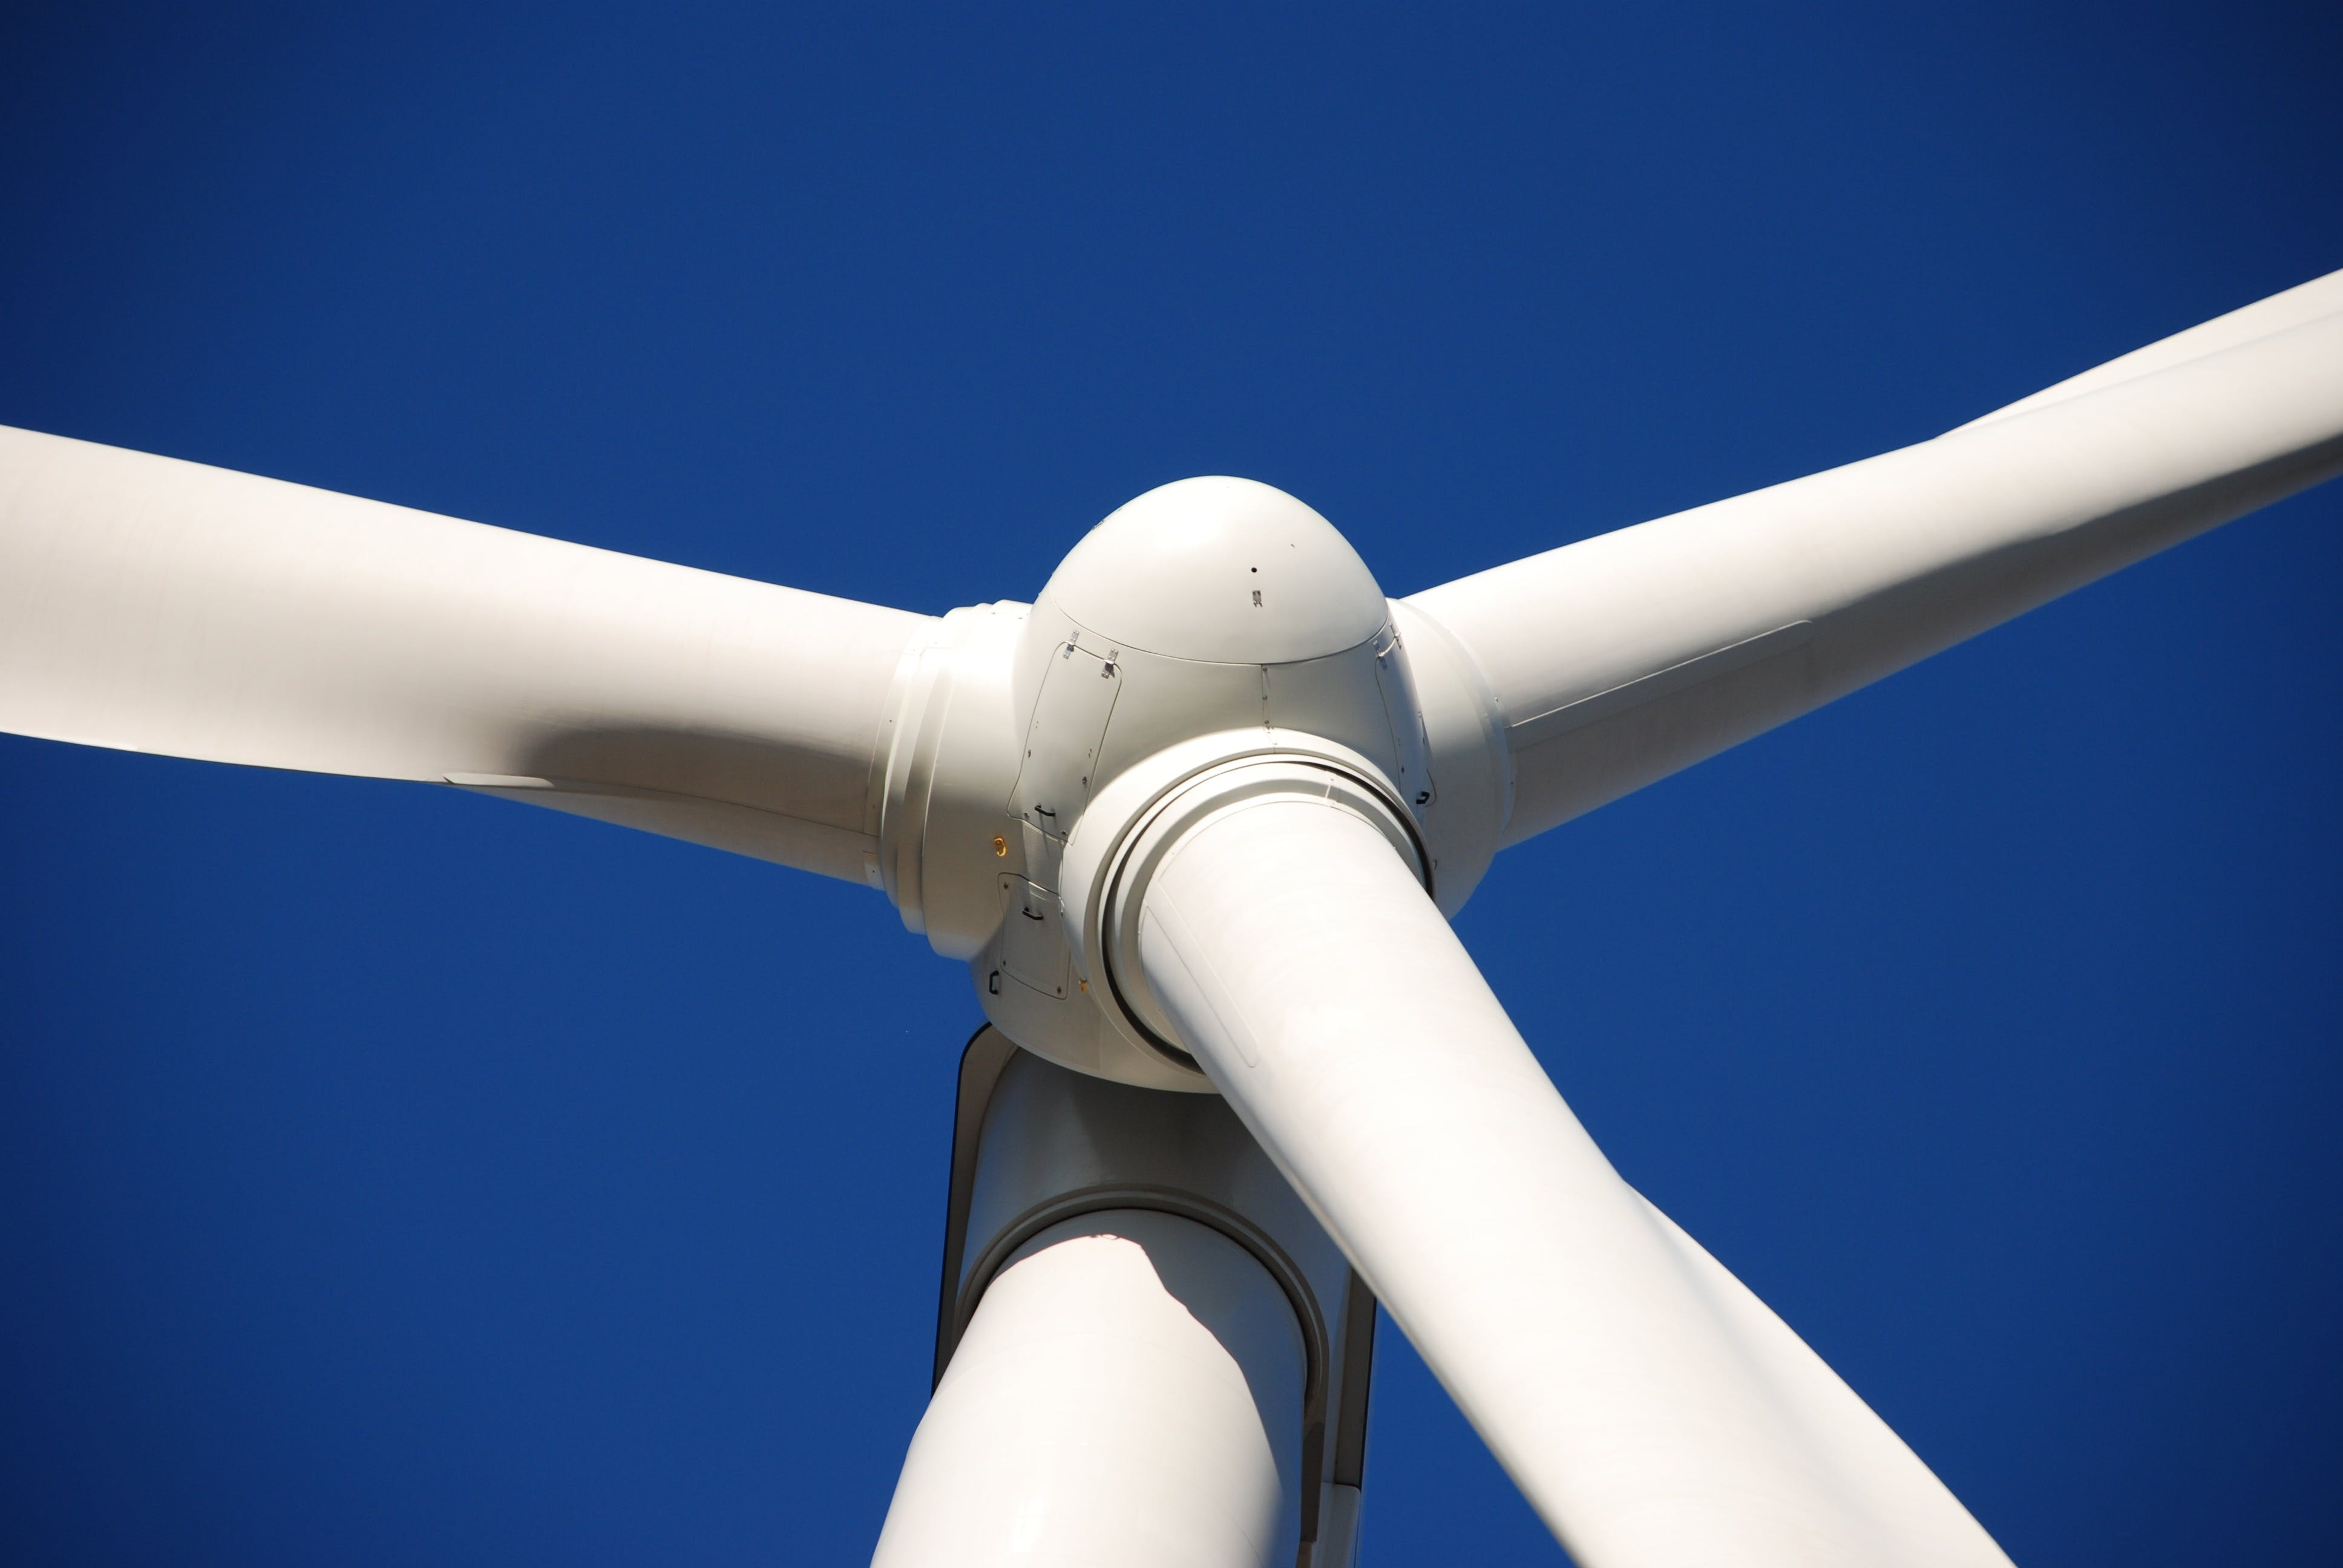 Low Angle Photo of White Wind Turbine Under Deep Blue Sky